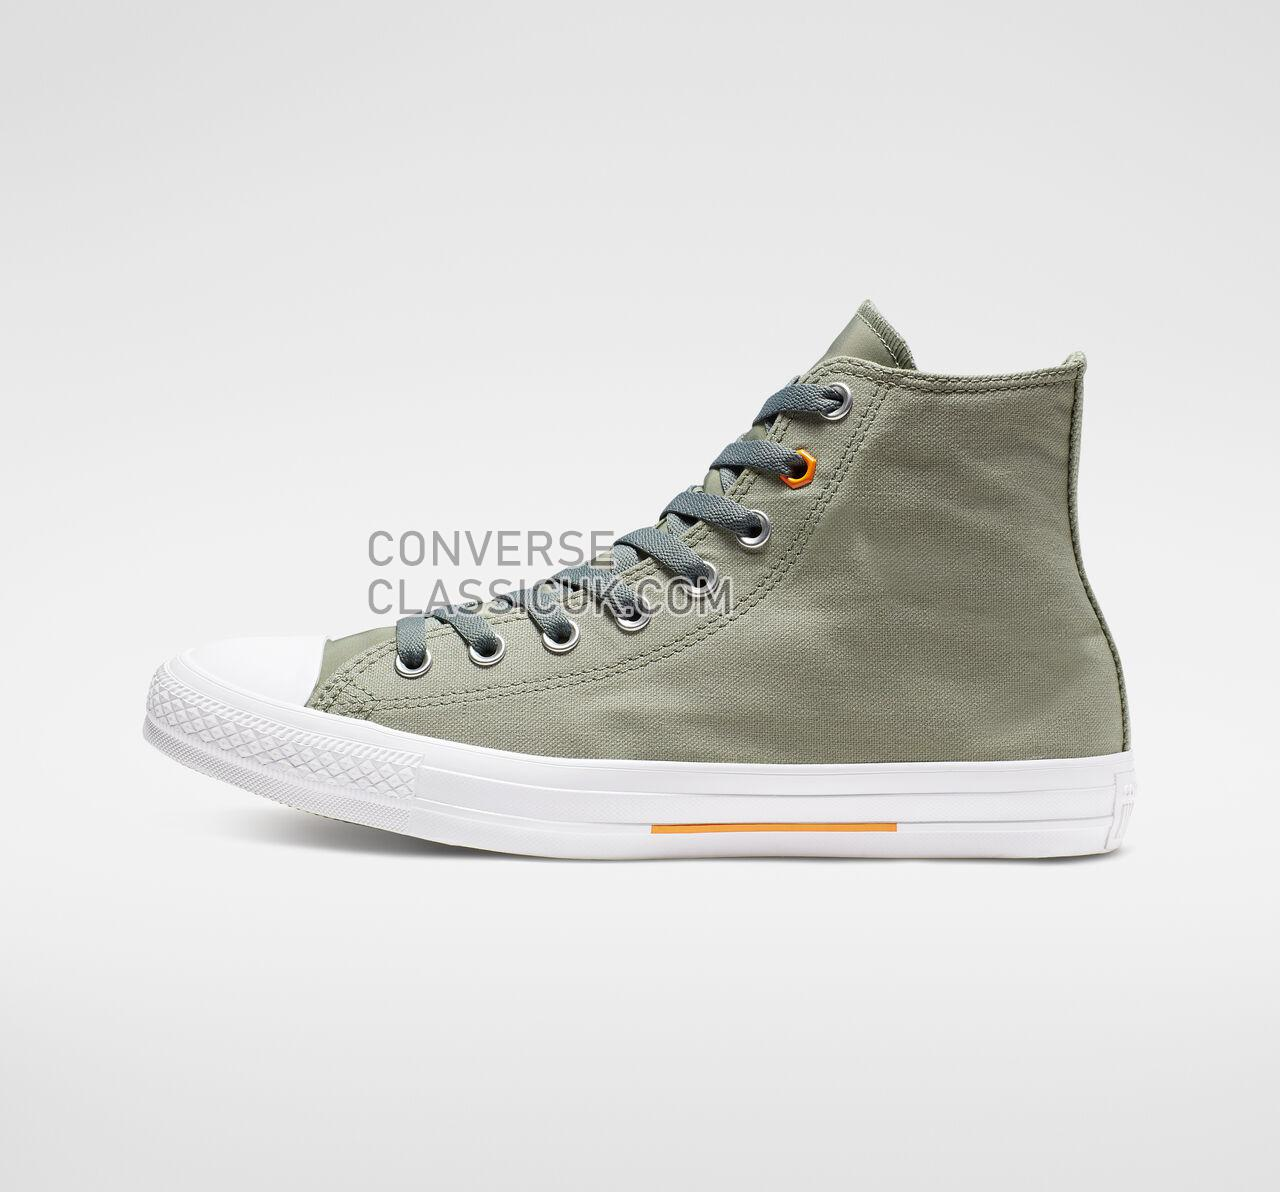 Converse Chuck Taylor All Star Flight School High Top Mens Womens Unisex 165052F Jade Stone/Orange Rind/White Shoes